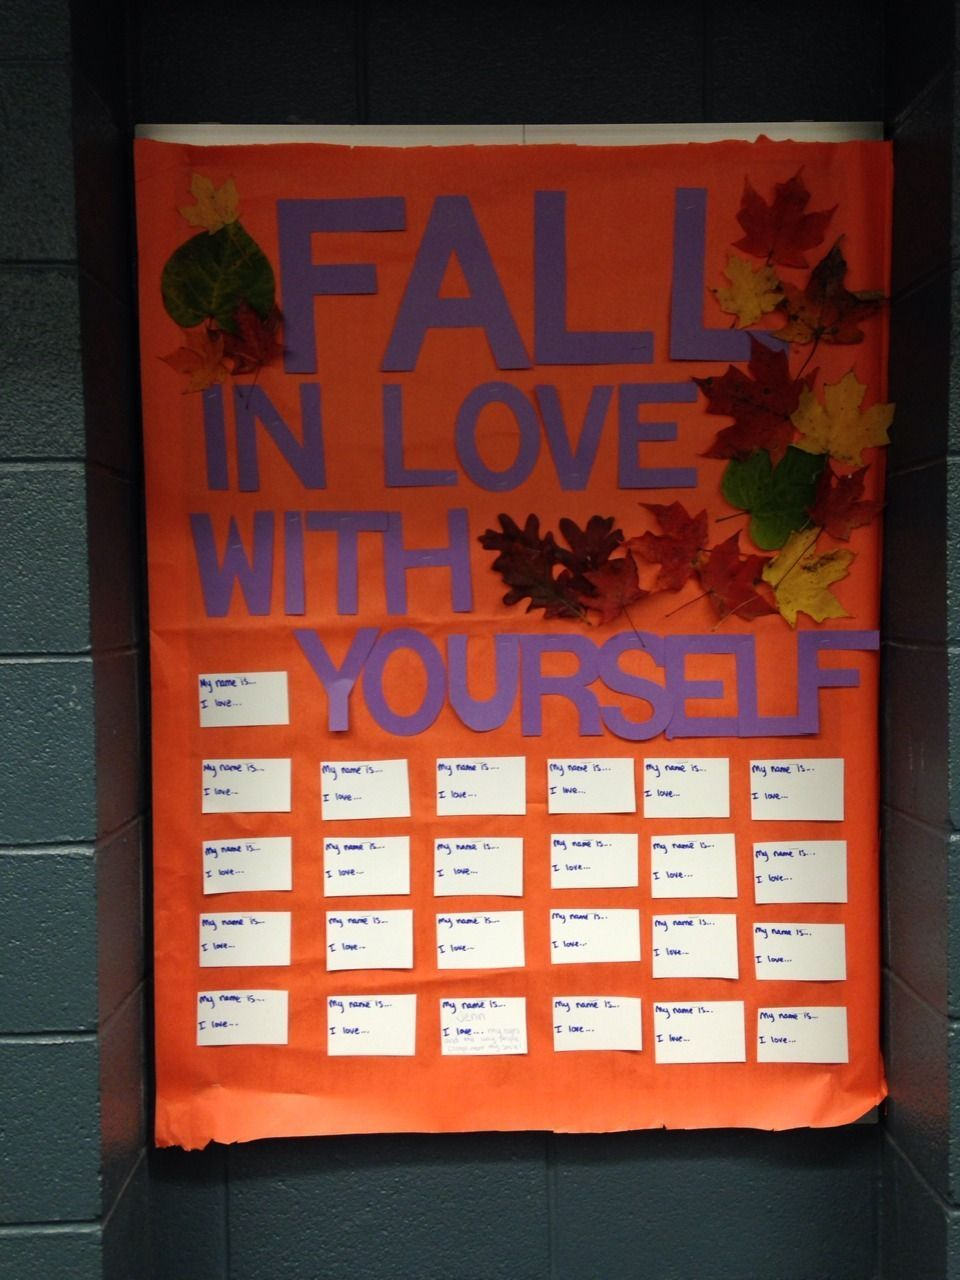 Fuck Yeah Res Life! — adventuresinasheville: Another proud bulletin... #octoberbulletinboards Fuck Yeah Res Life! — adventuresinasheville: Another proud bulletin... #rabulletinboards